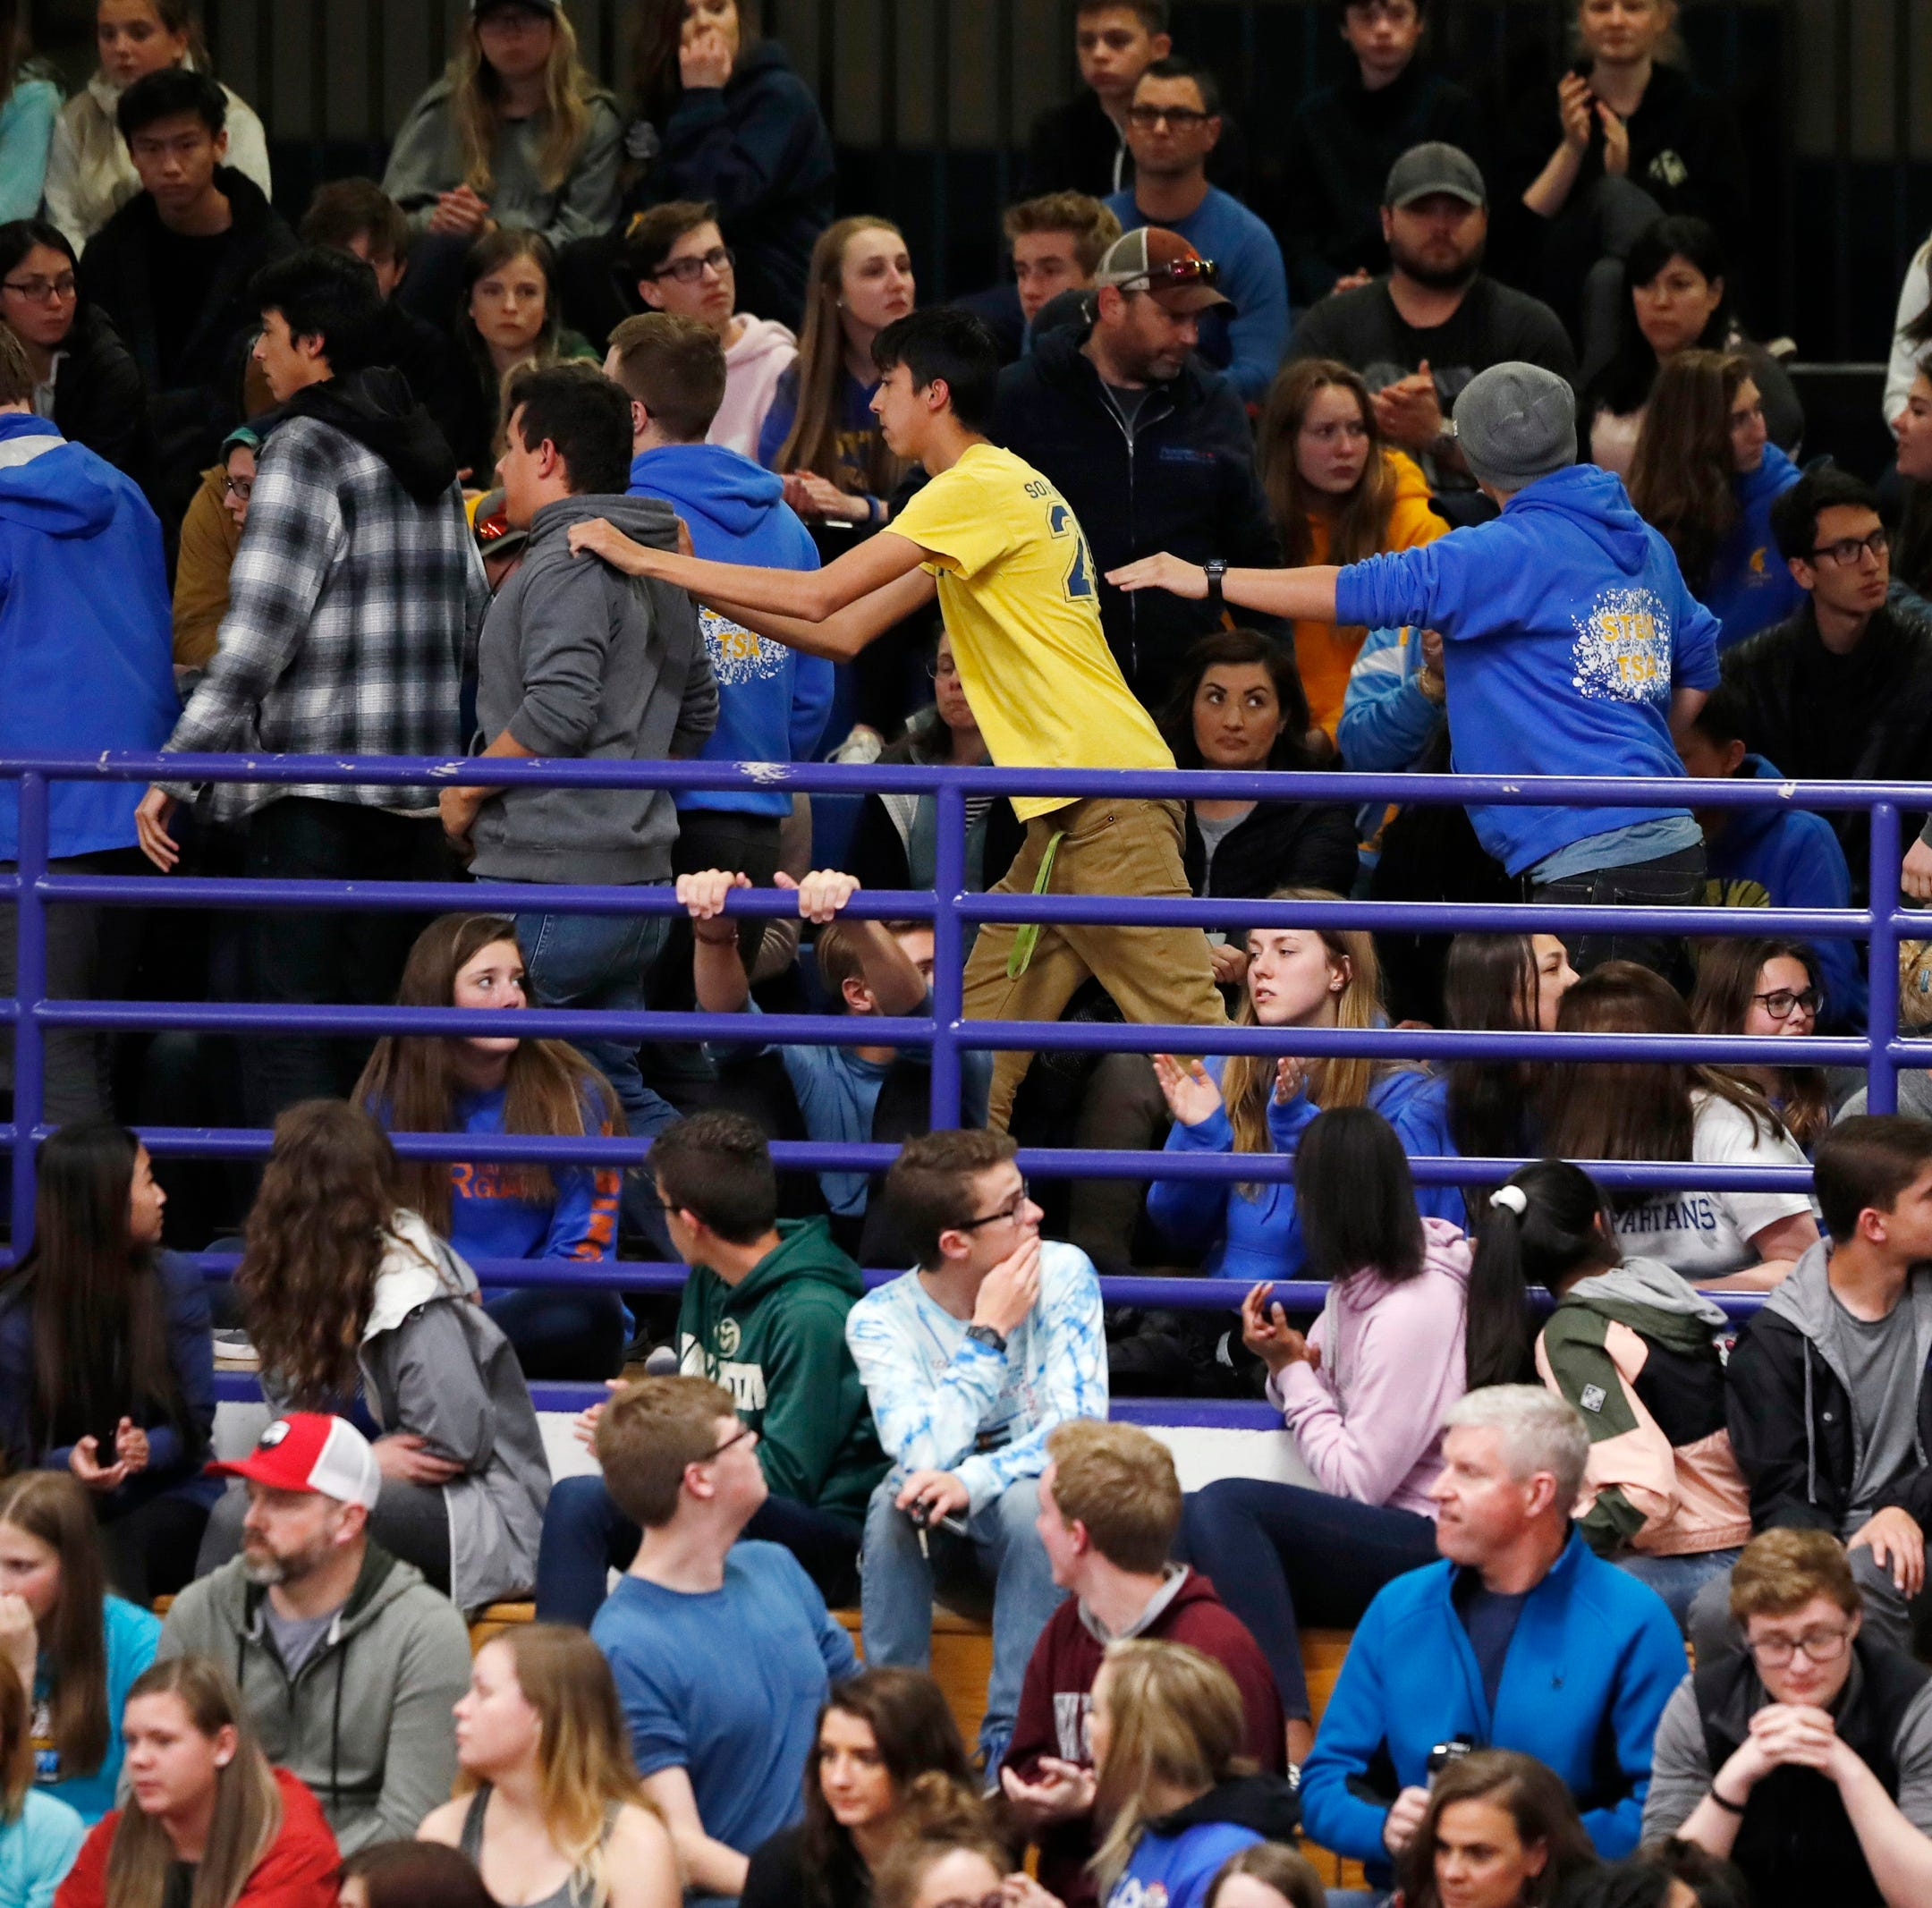 Students leave during a community vigil held to honor the victims and survivors of yesterday's fatal shooting at the STEM School Highlands Ranch, late Wednesday, May 8, 2019, in Highlands Ranch, Colo.